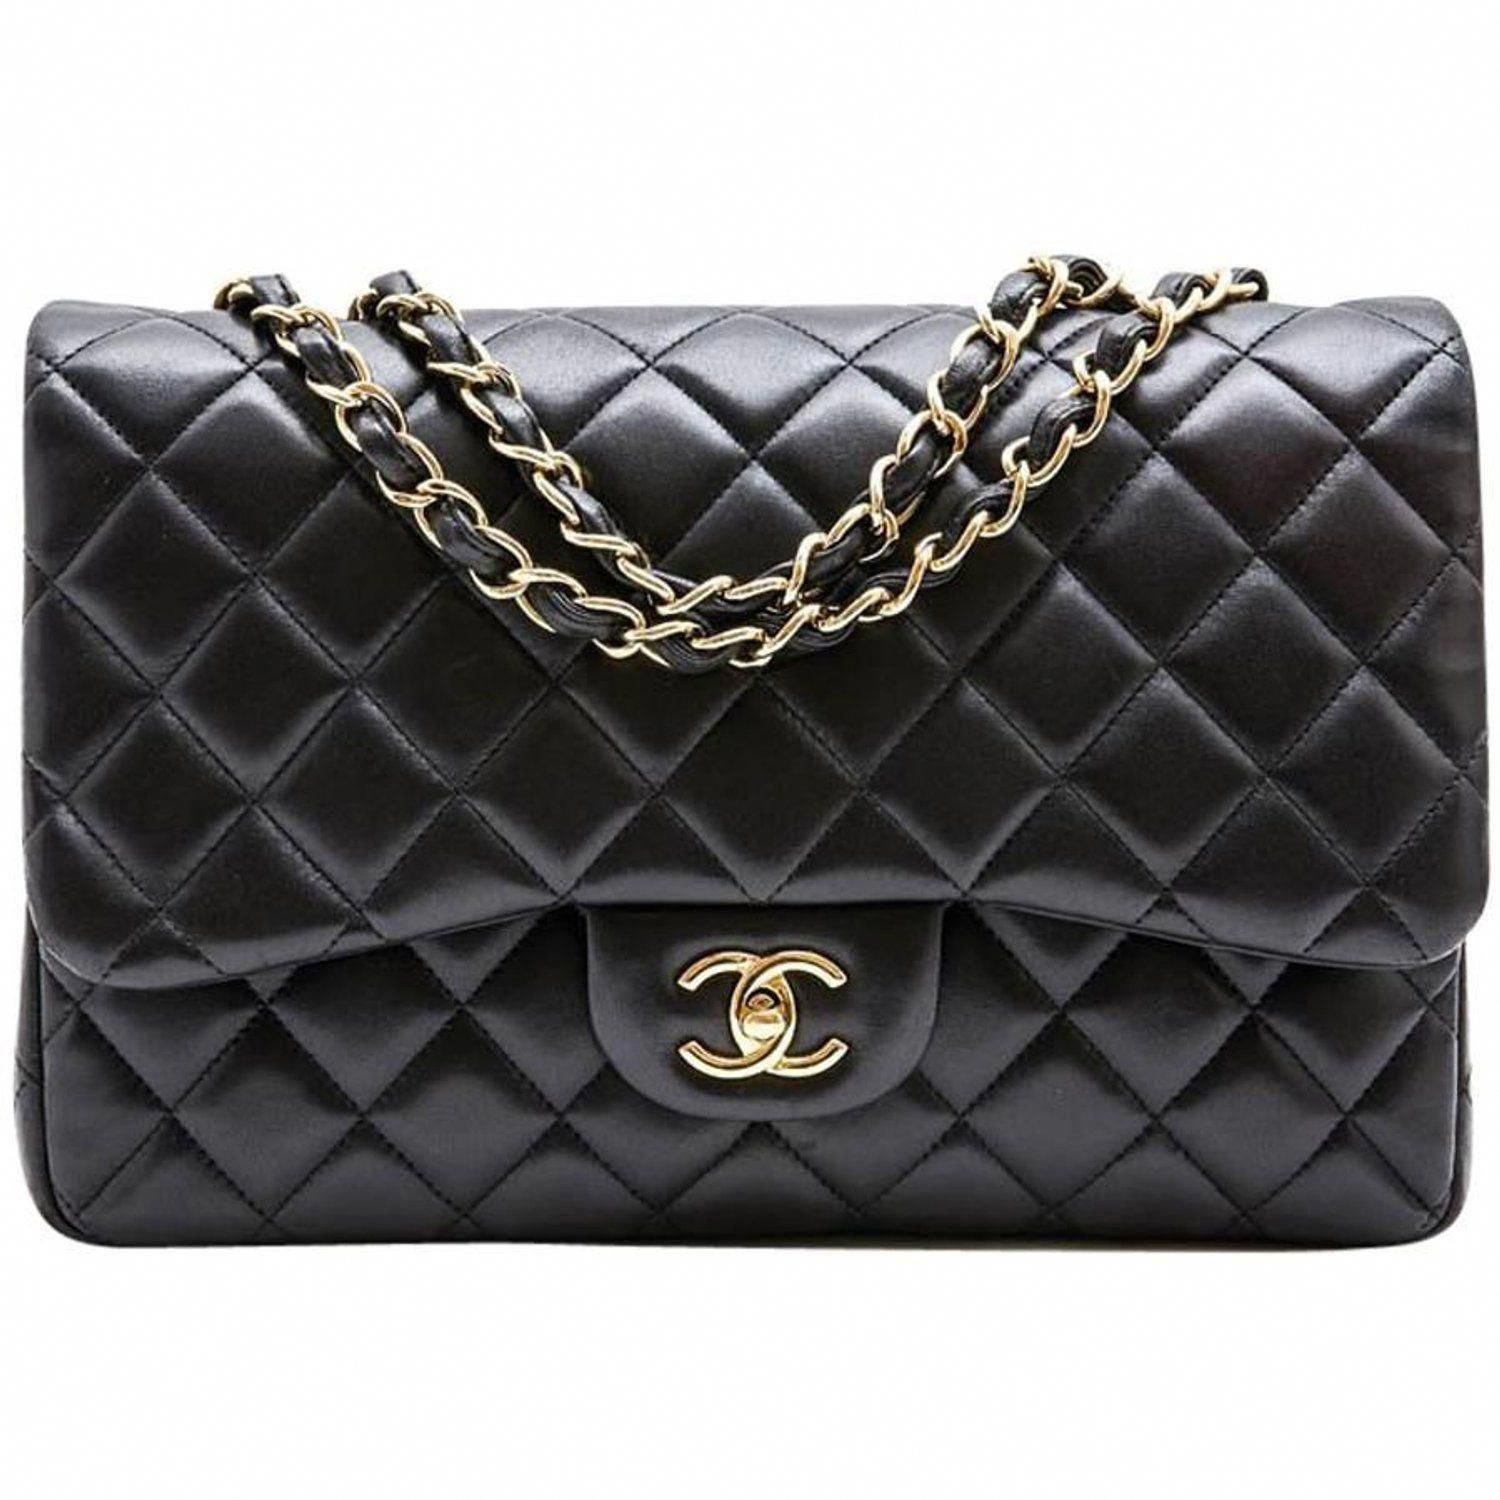 abb403dd0f0c CHANEL  Jumbo  Bag in Black Quilted Smooth Lamb Leather For Sale at 1stdibs